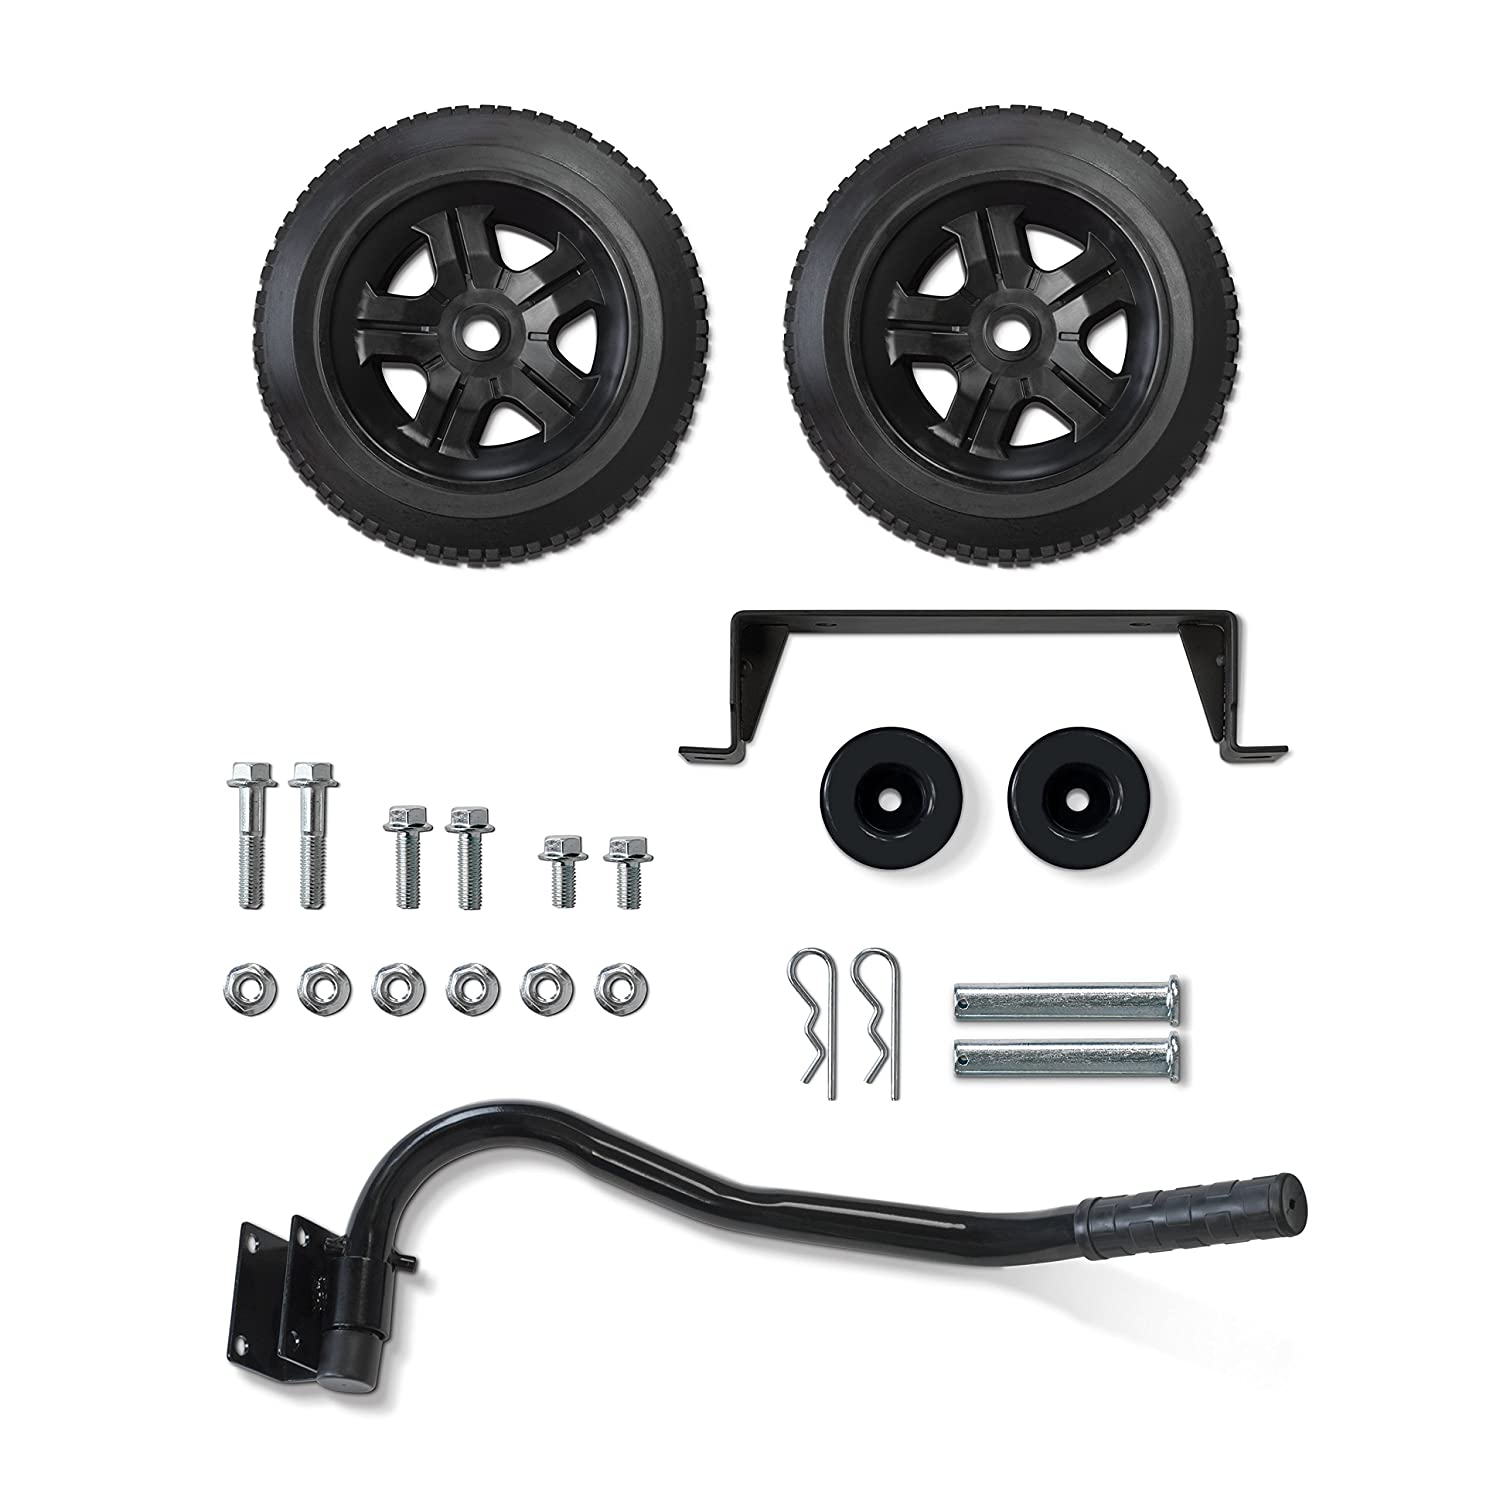 Champion Wheel Kit with Folding Handle and Never-Flat Tires for 2800 to 4750-Watt Generators